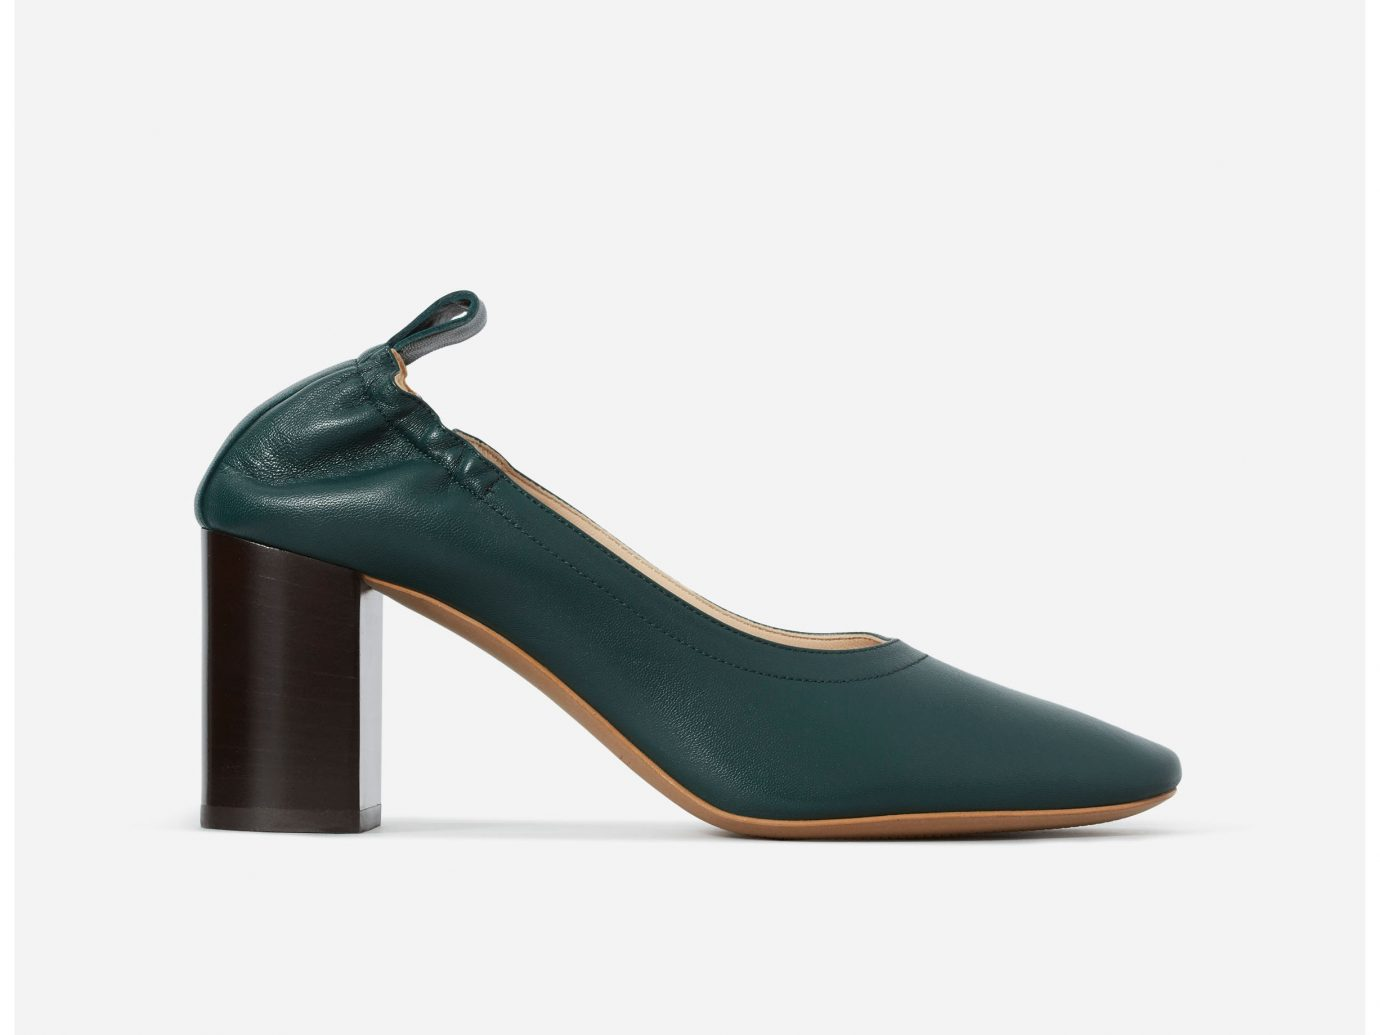 Everlane The Day High Heel in Ivy